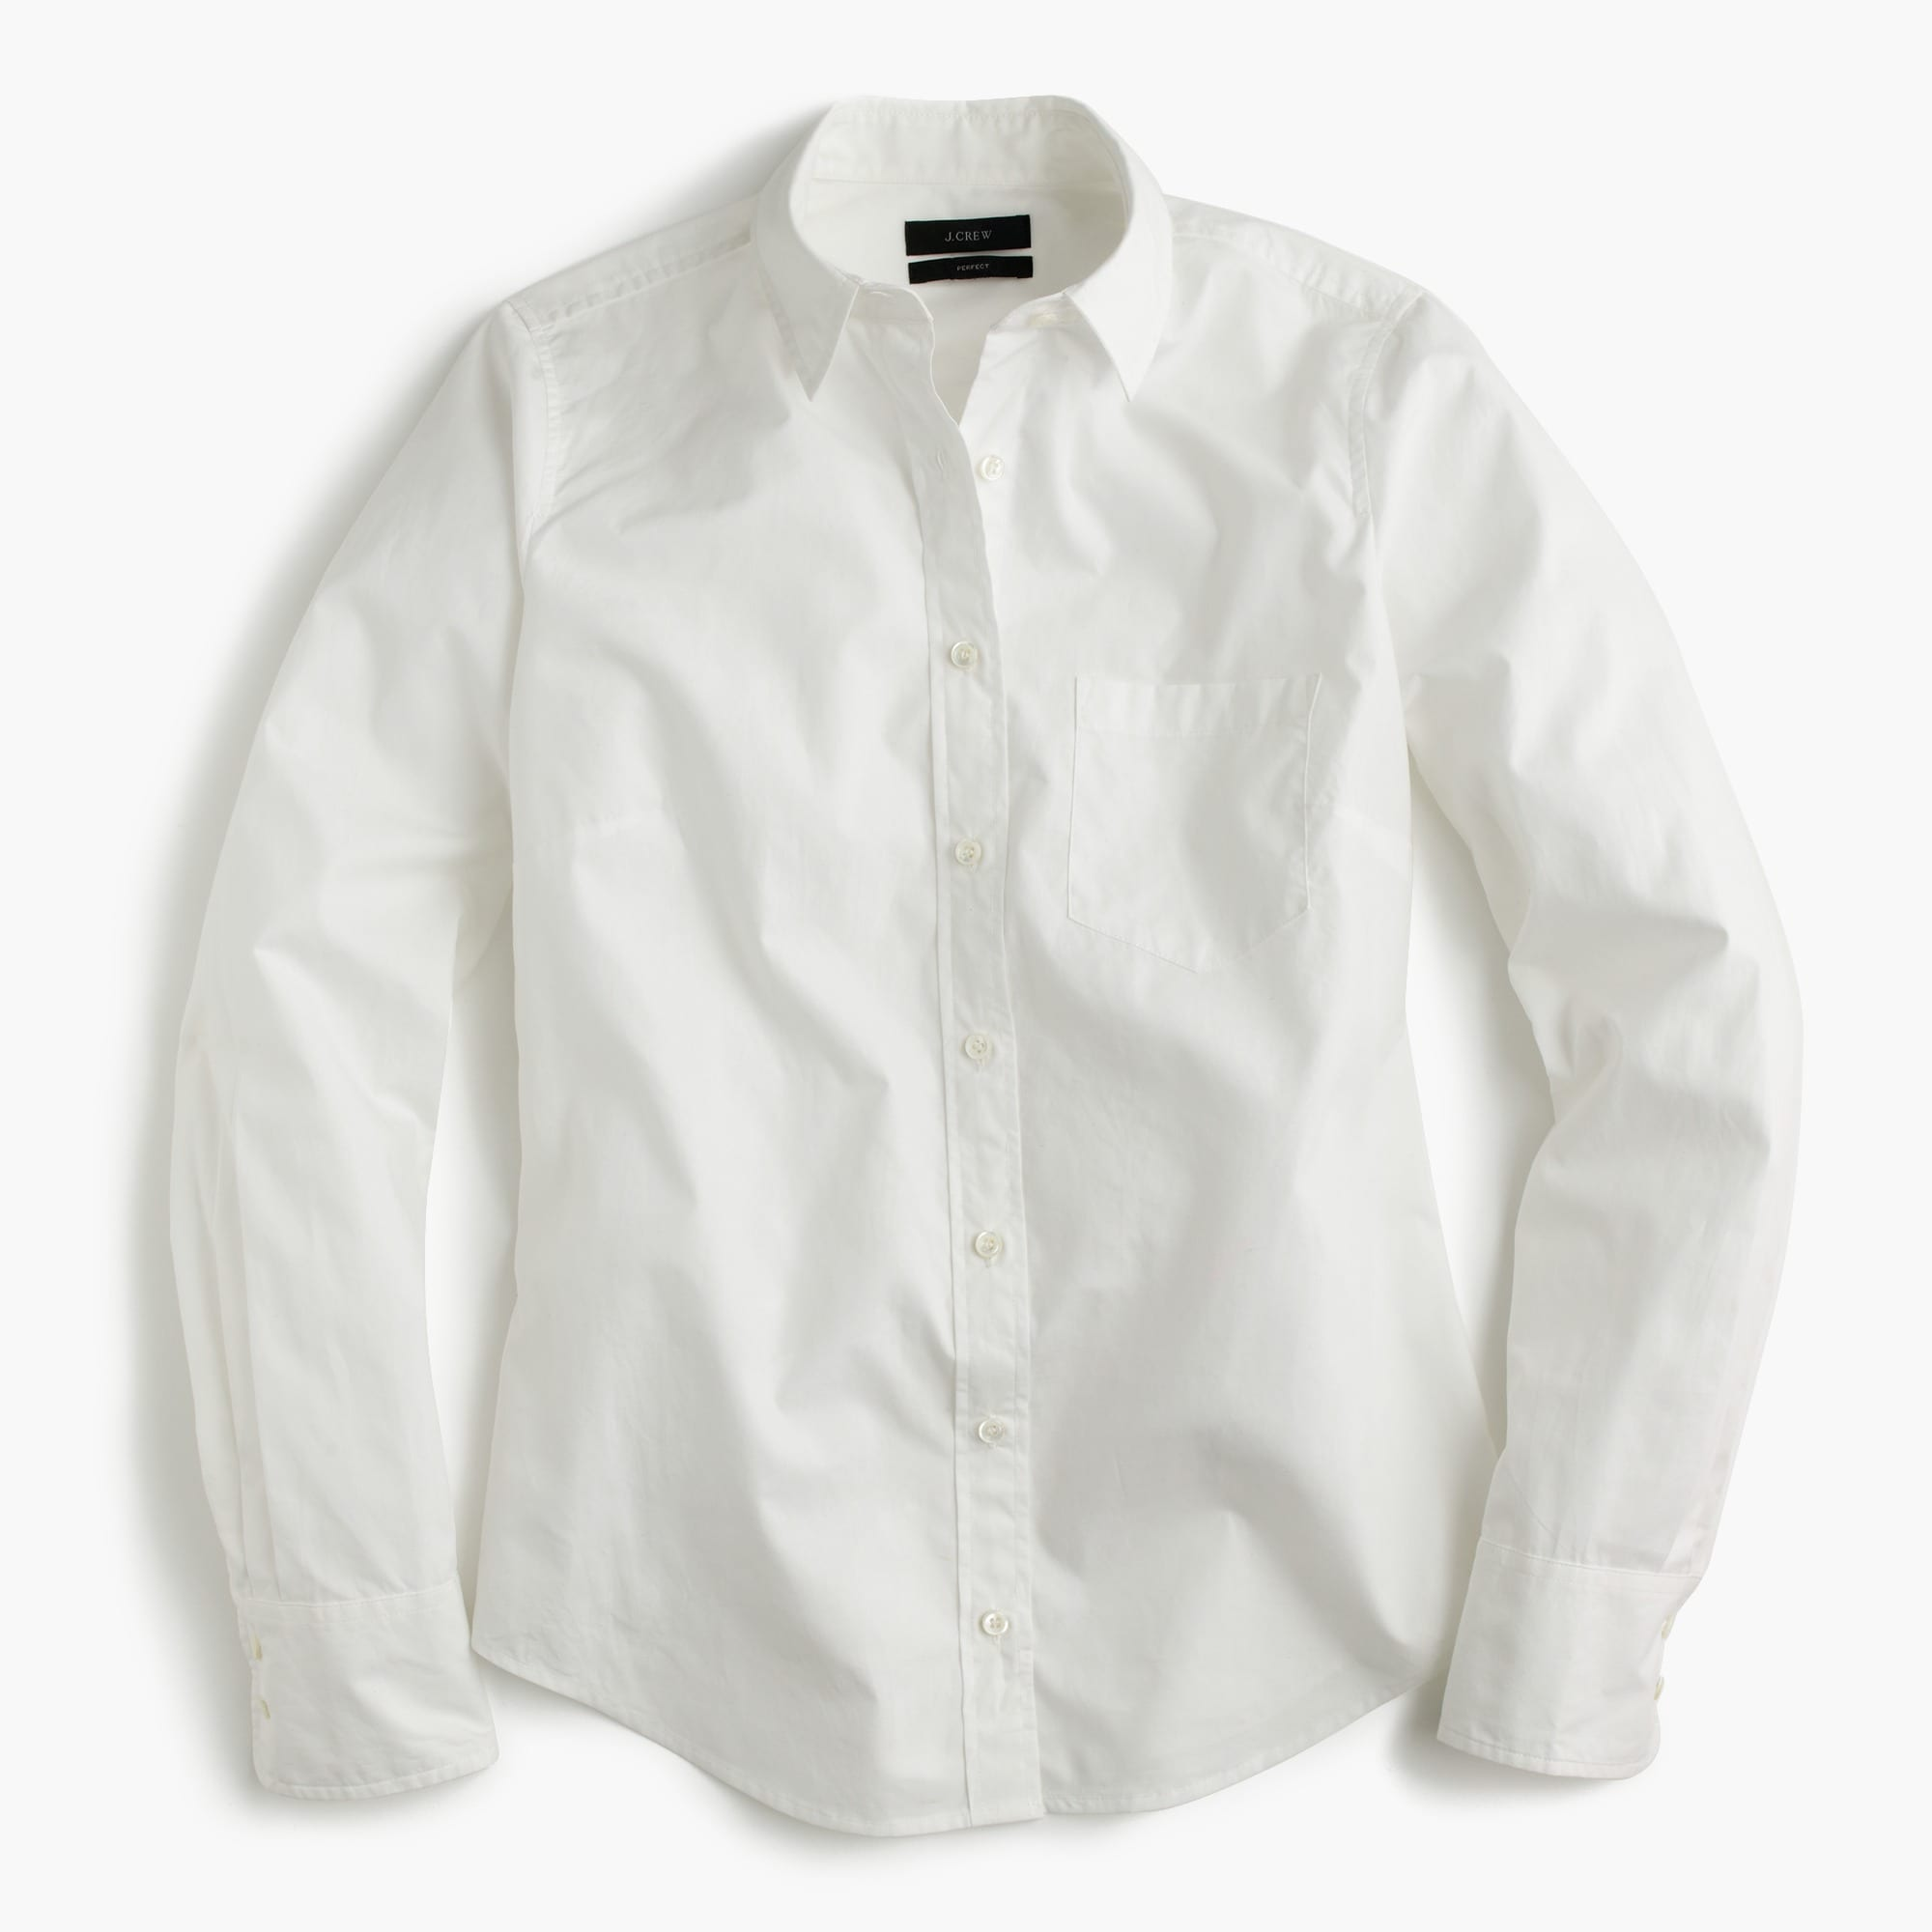 Petite new perfect shirt in cotton poplin